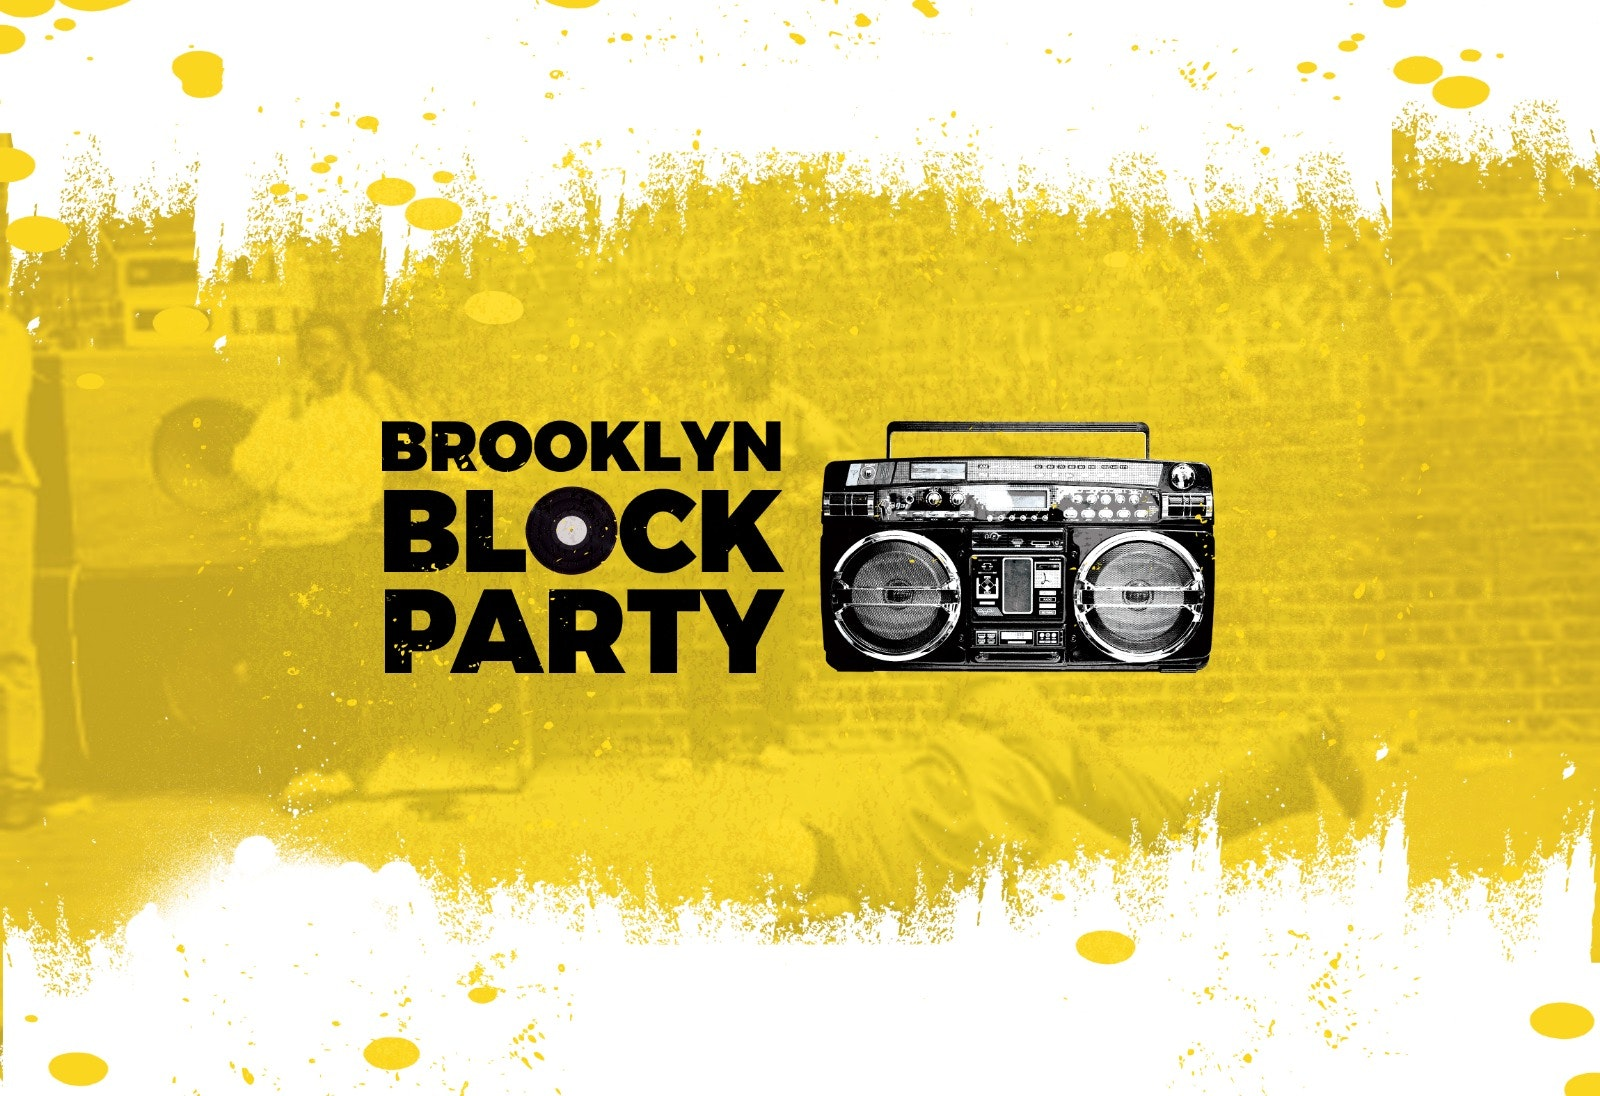 Brooklyn Block Party